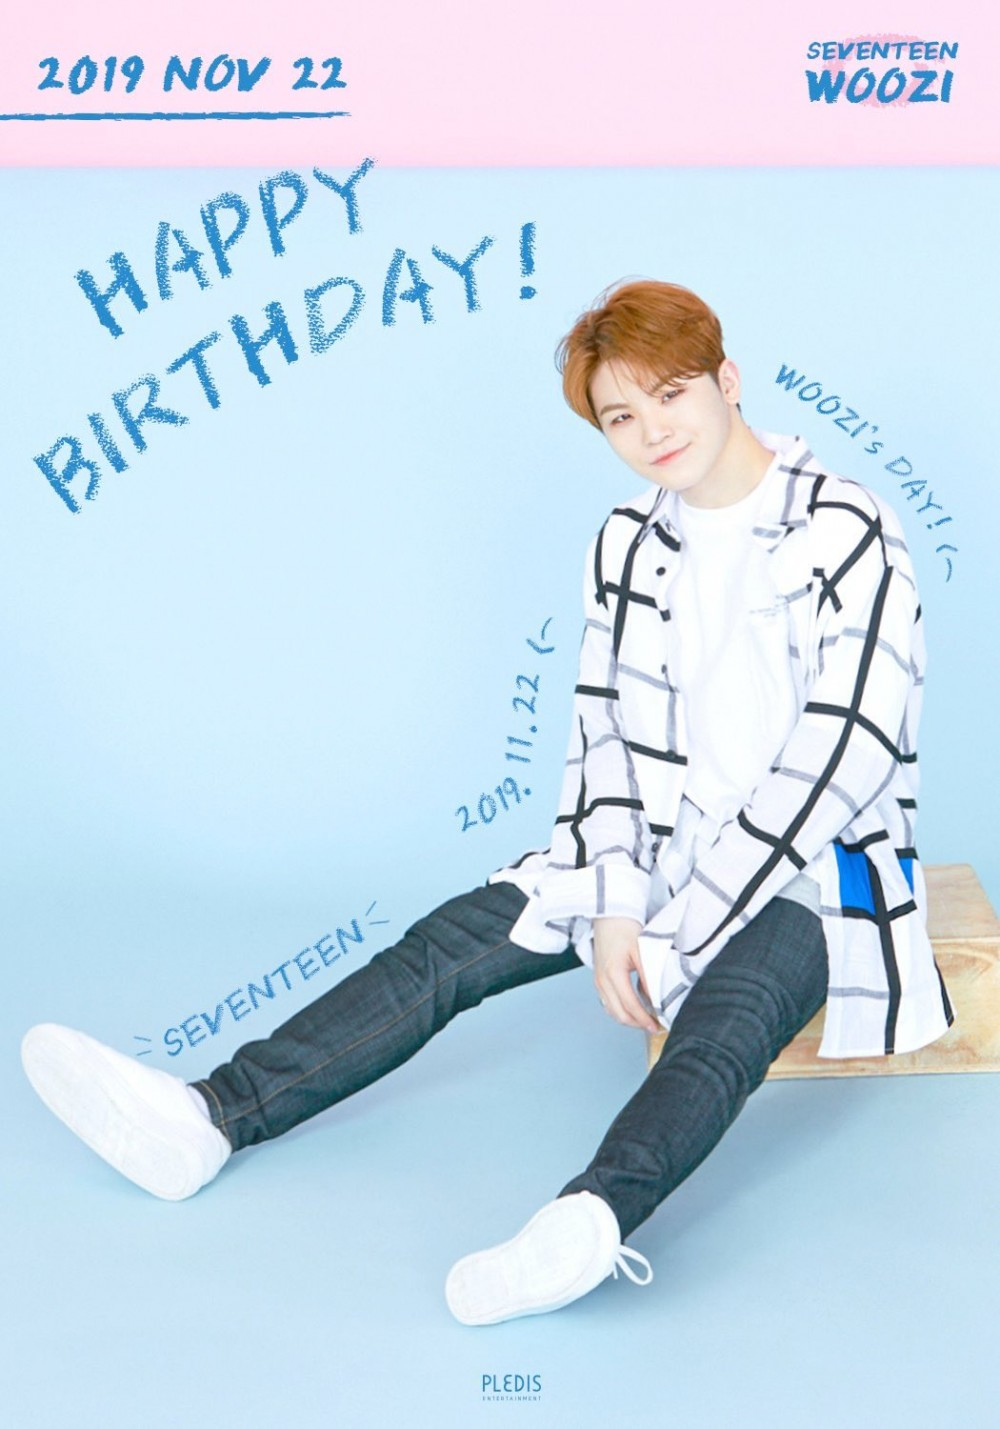 Ourmiraclewooziday Trending Worldwide On Twitter As Fans Celebrate Seventeen Woozi S Birthday Allkpop